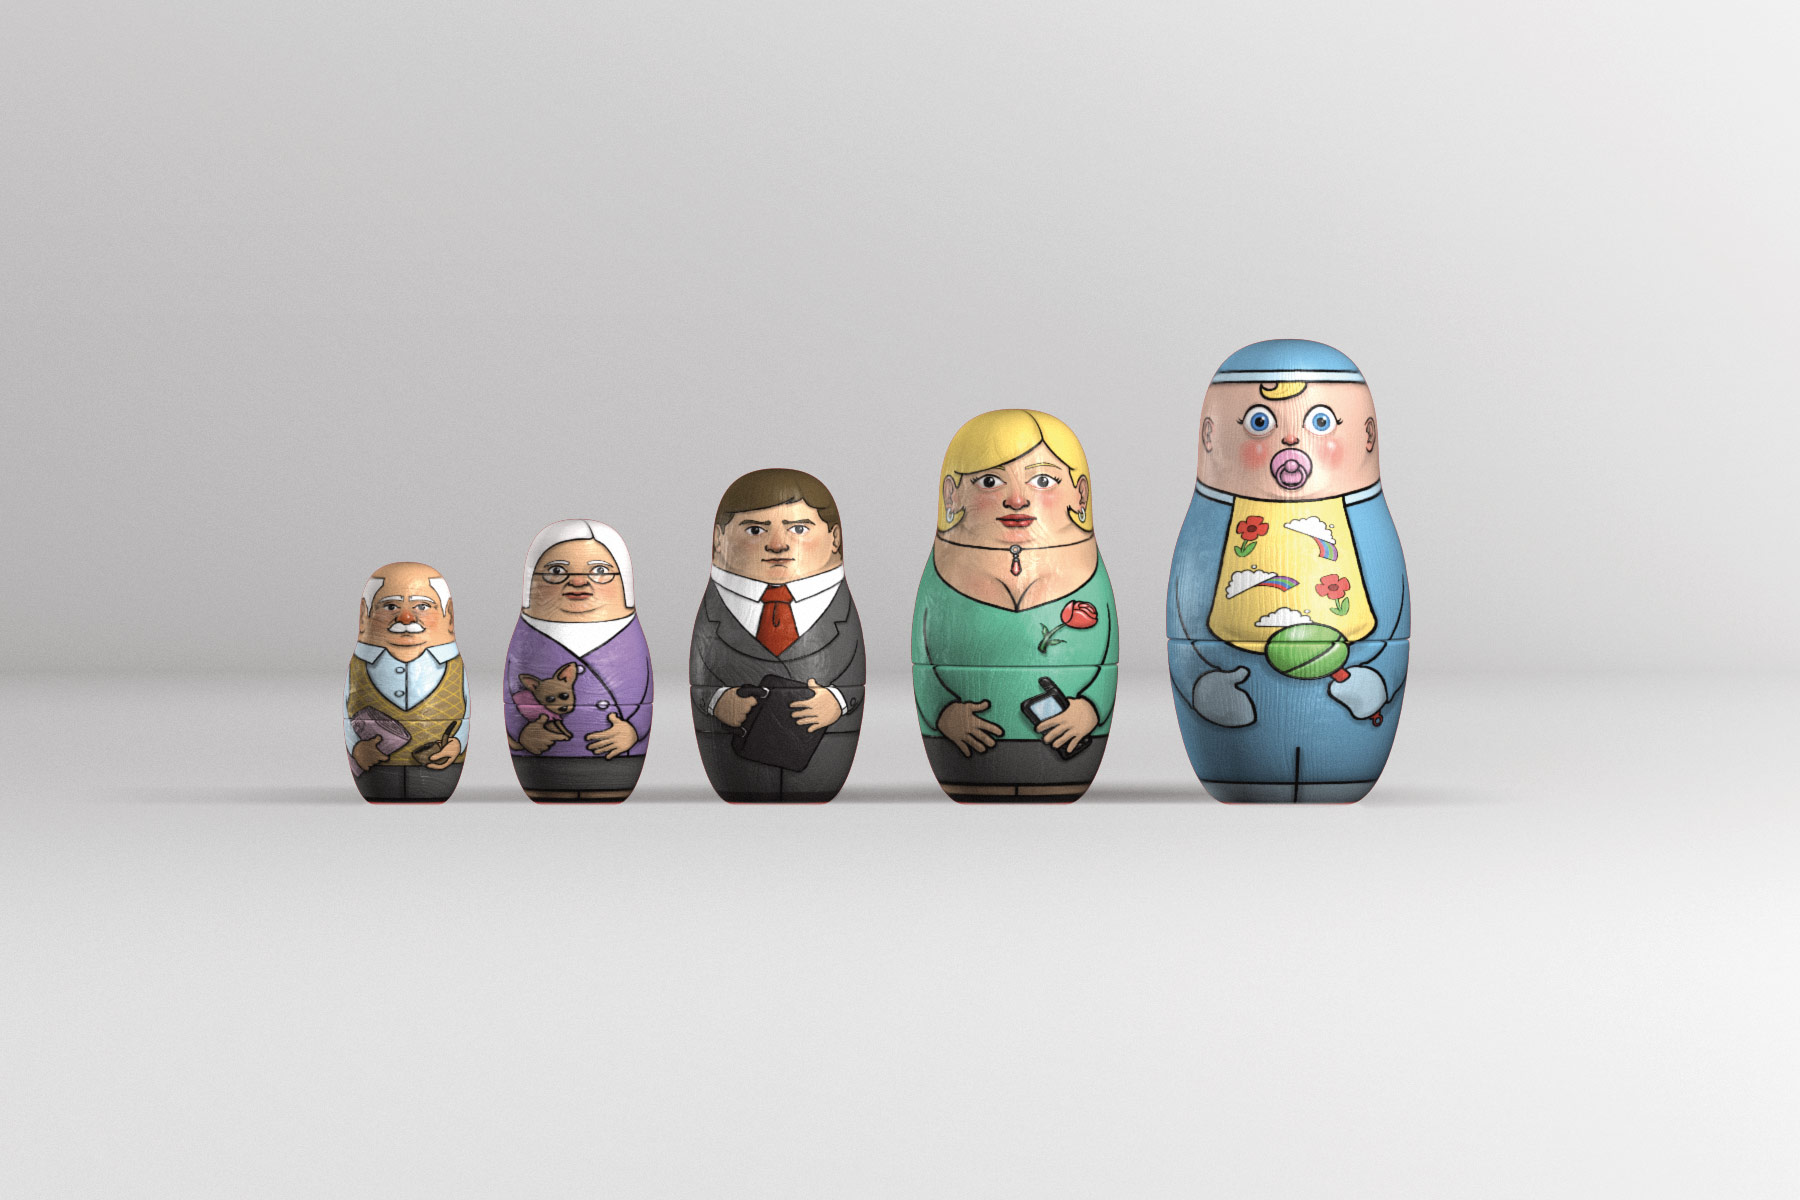 The dolls were produced by creating 3D objects around a doll spline and mapping hand drawn textures onto the forms.